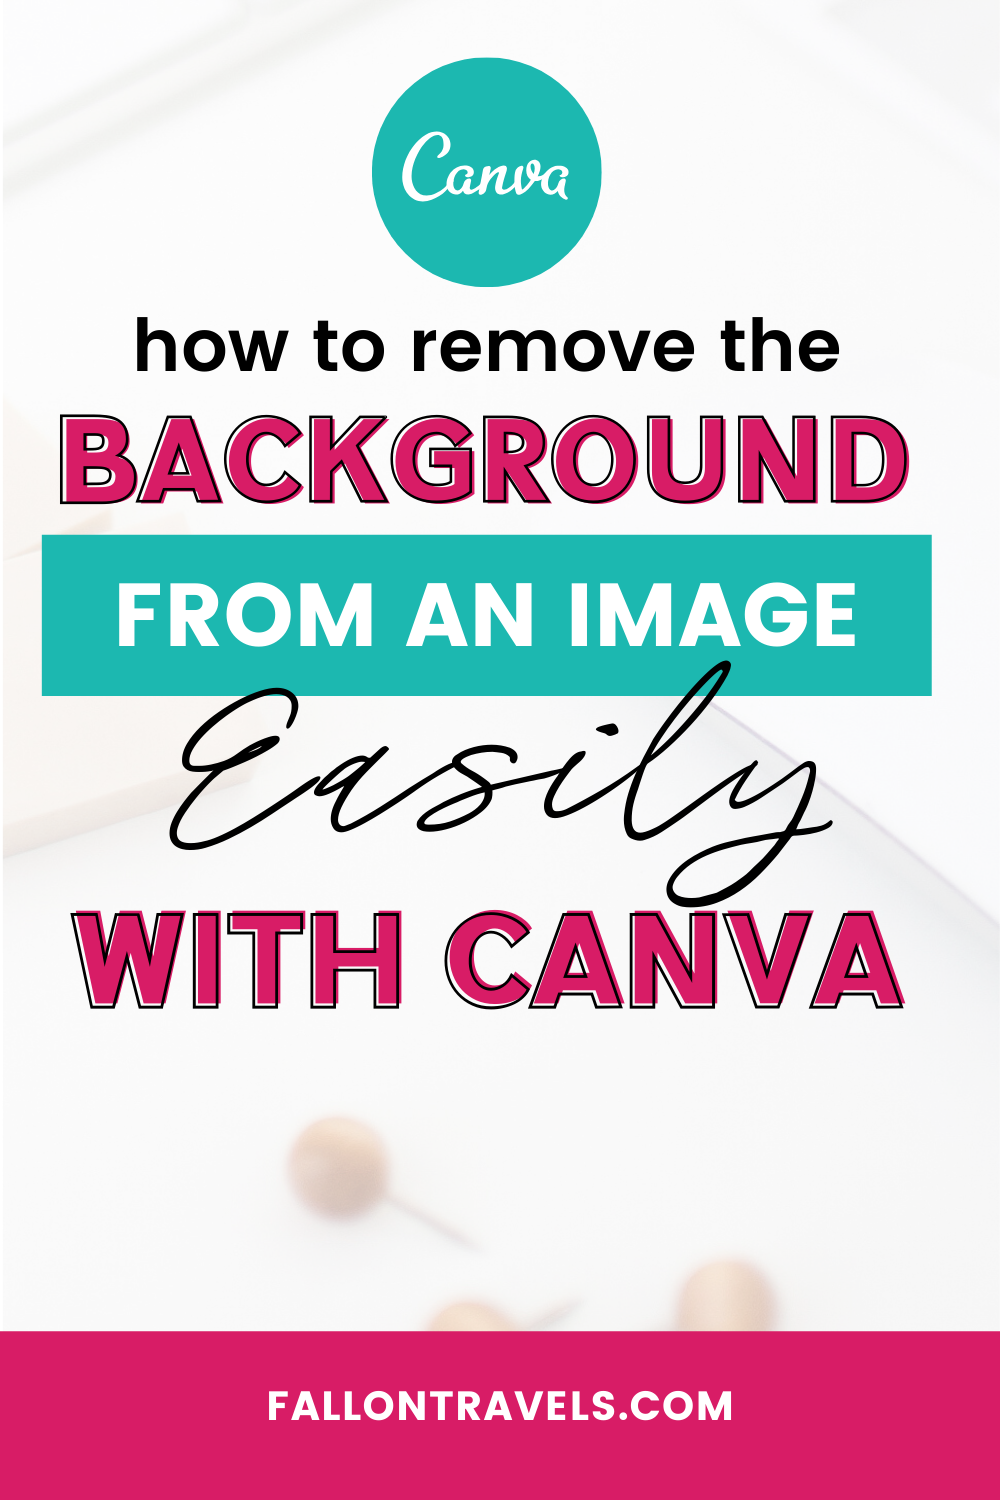 How to Remove the Background from an Image in Canva (no